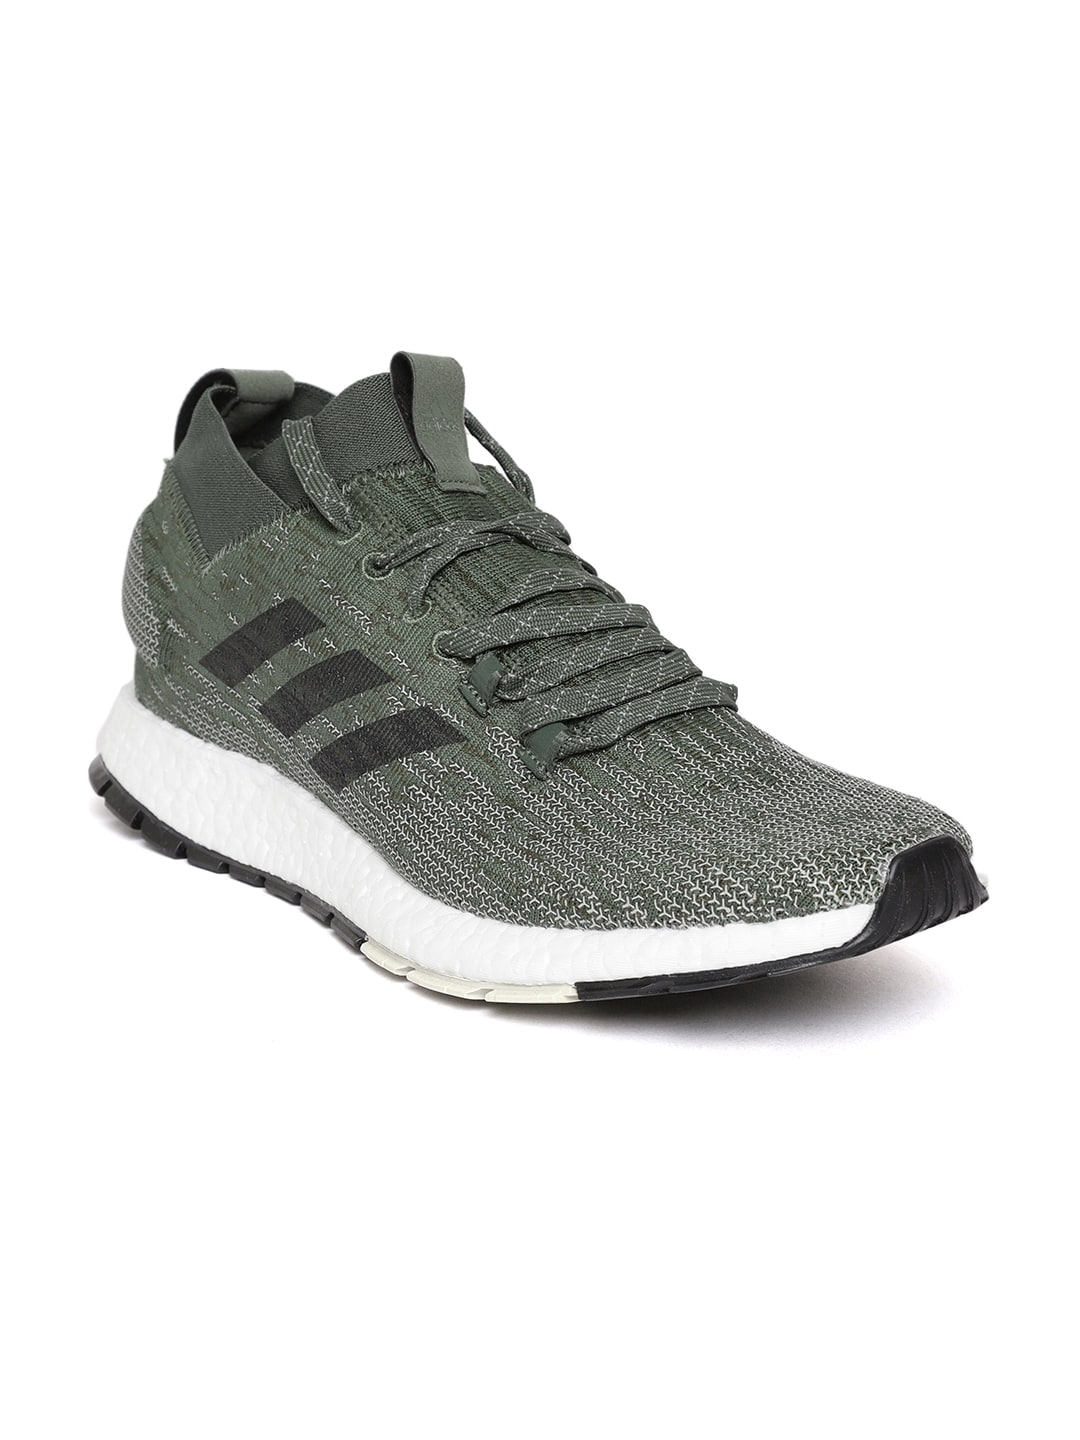 a84a30c10a6 Adidas Pureboost Collection - Buy Adidas Pureboost Collection online in  India